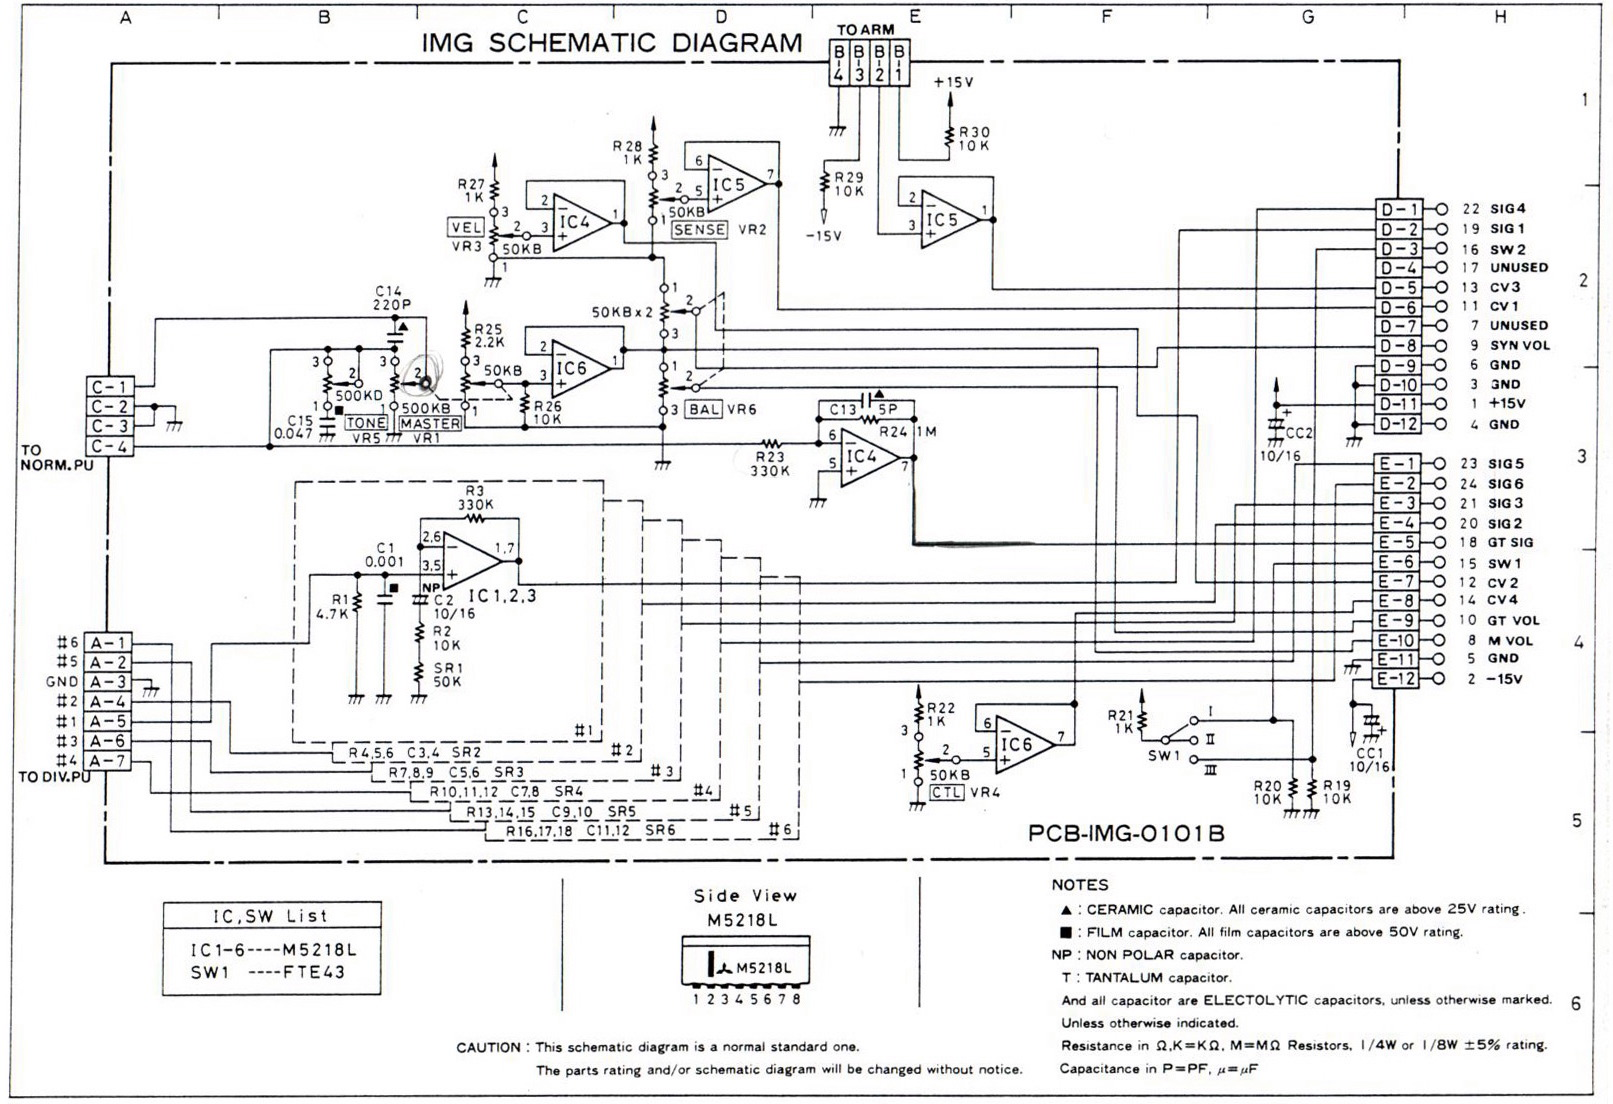 ibanez 2010 x ing midi guitar synthesizer controller the 2010 schematic